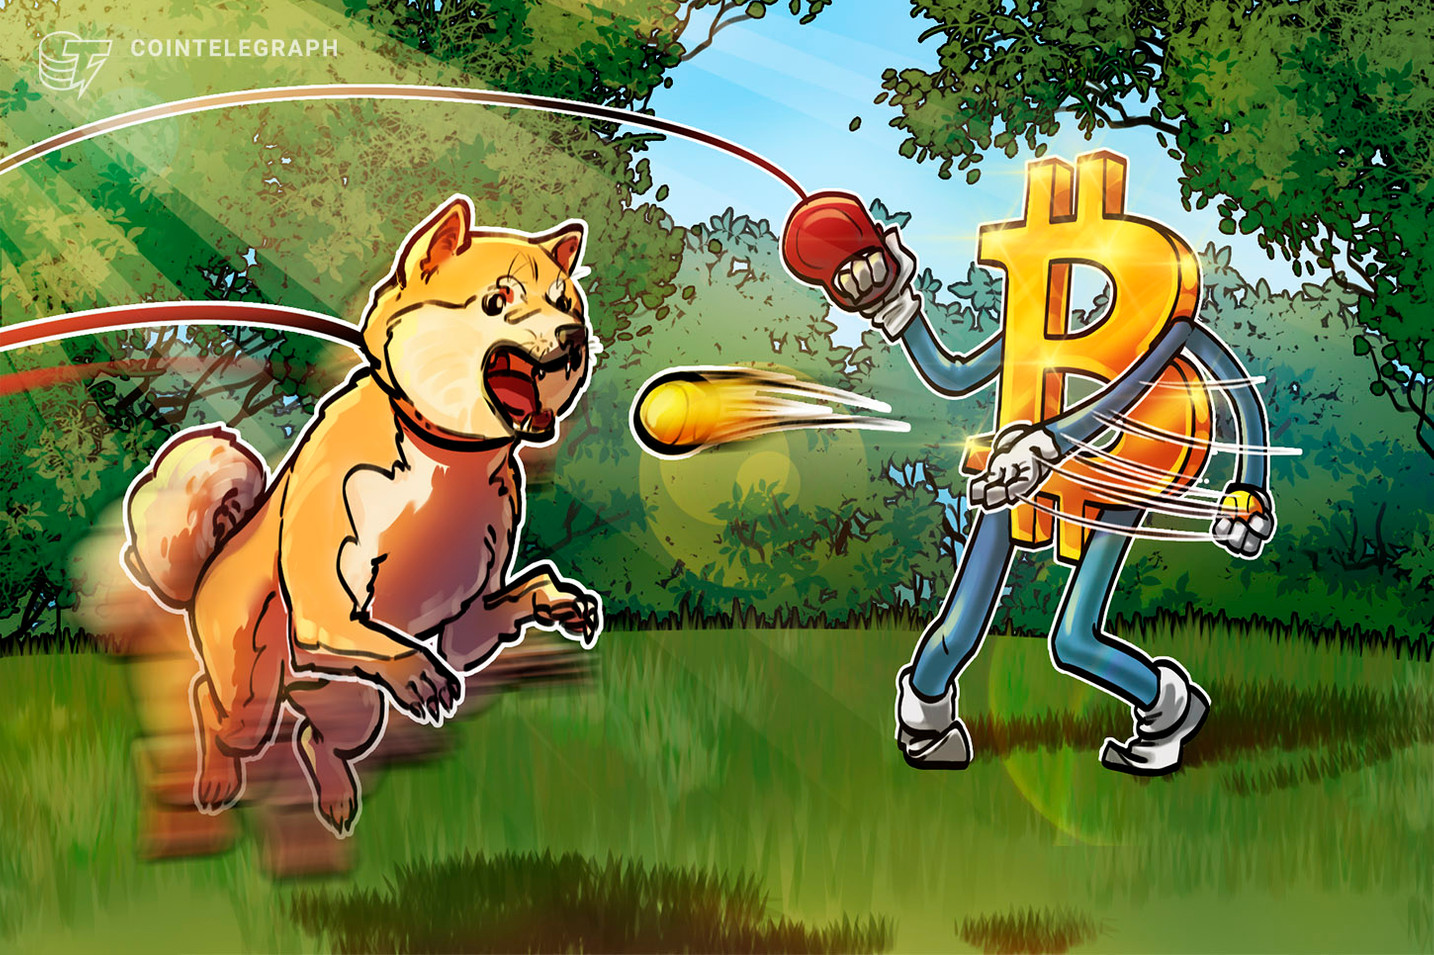 Dogecoin loses 70% against Bitcoin during 6 months of personage  DOGE endorsements